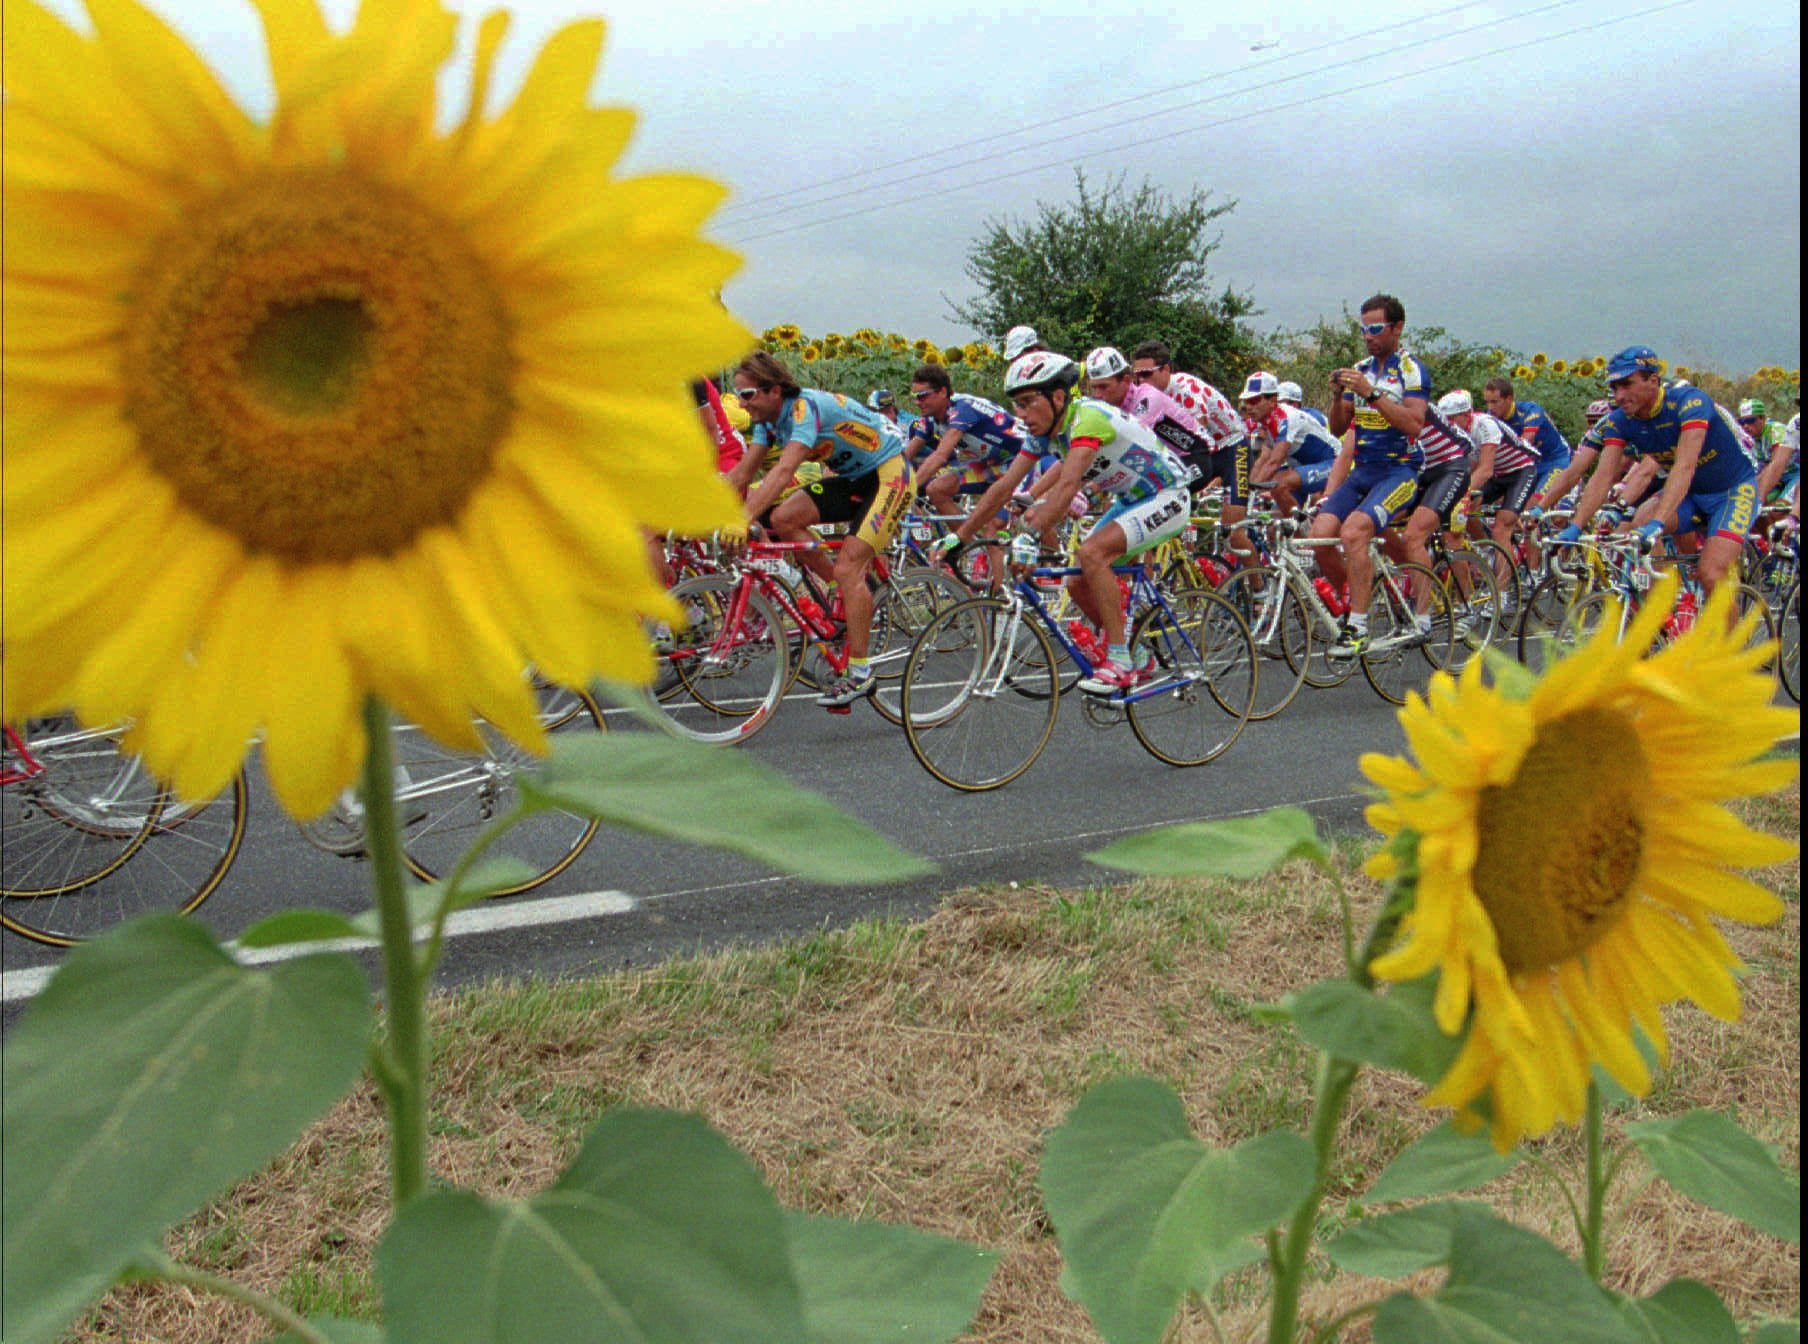 Sunflowers frame cyclists as the pack rides by under cloudy skies during the 14th stage of the Tour de France cycling race in July 1995.